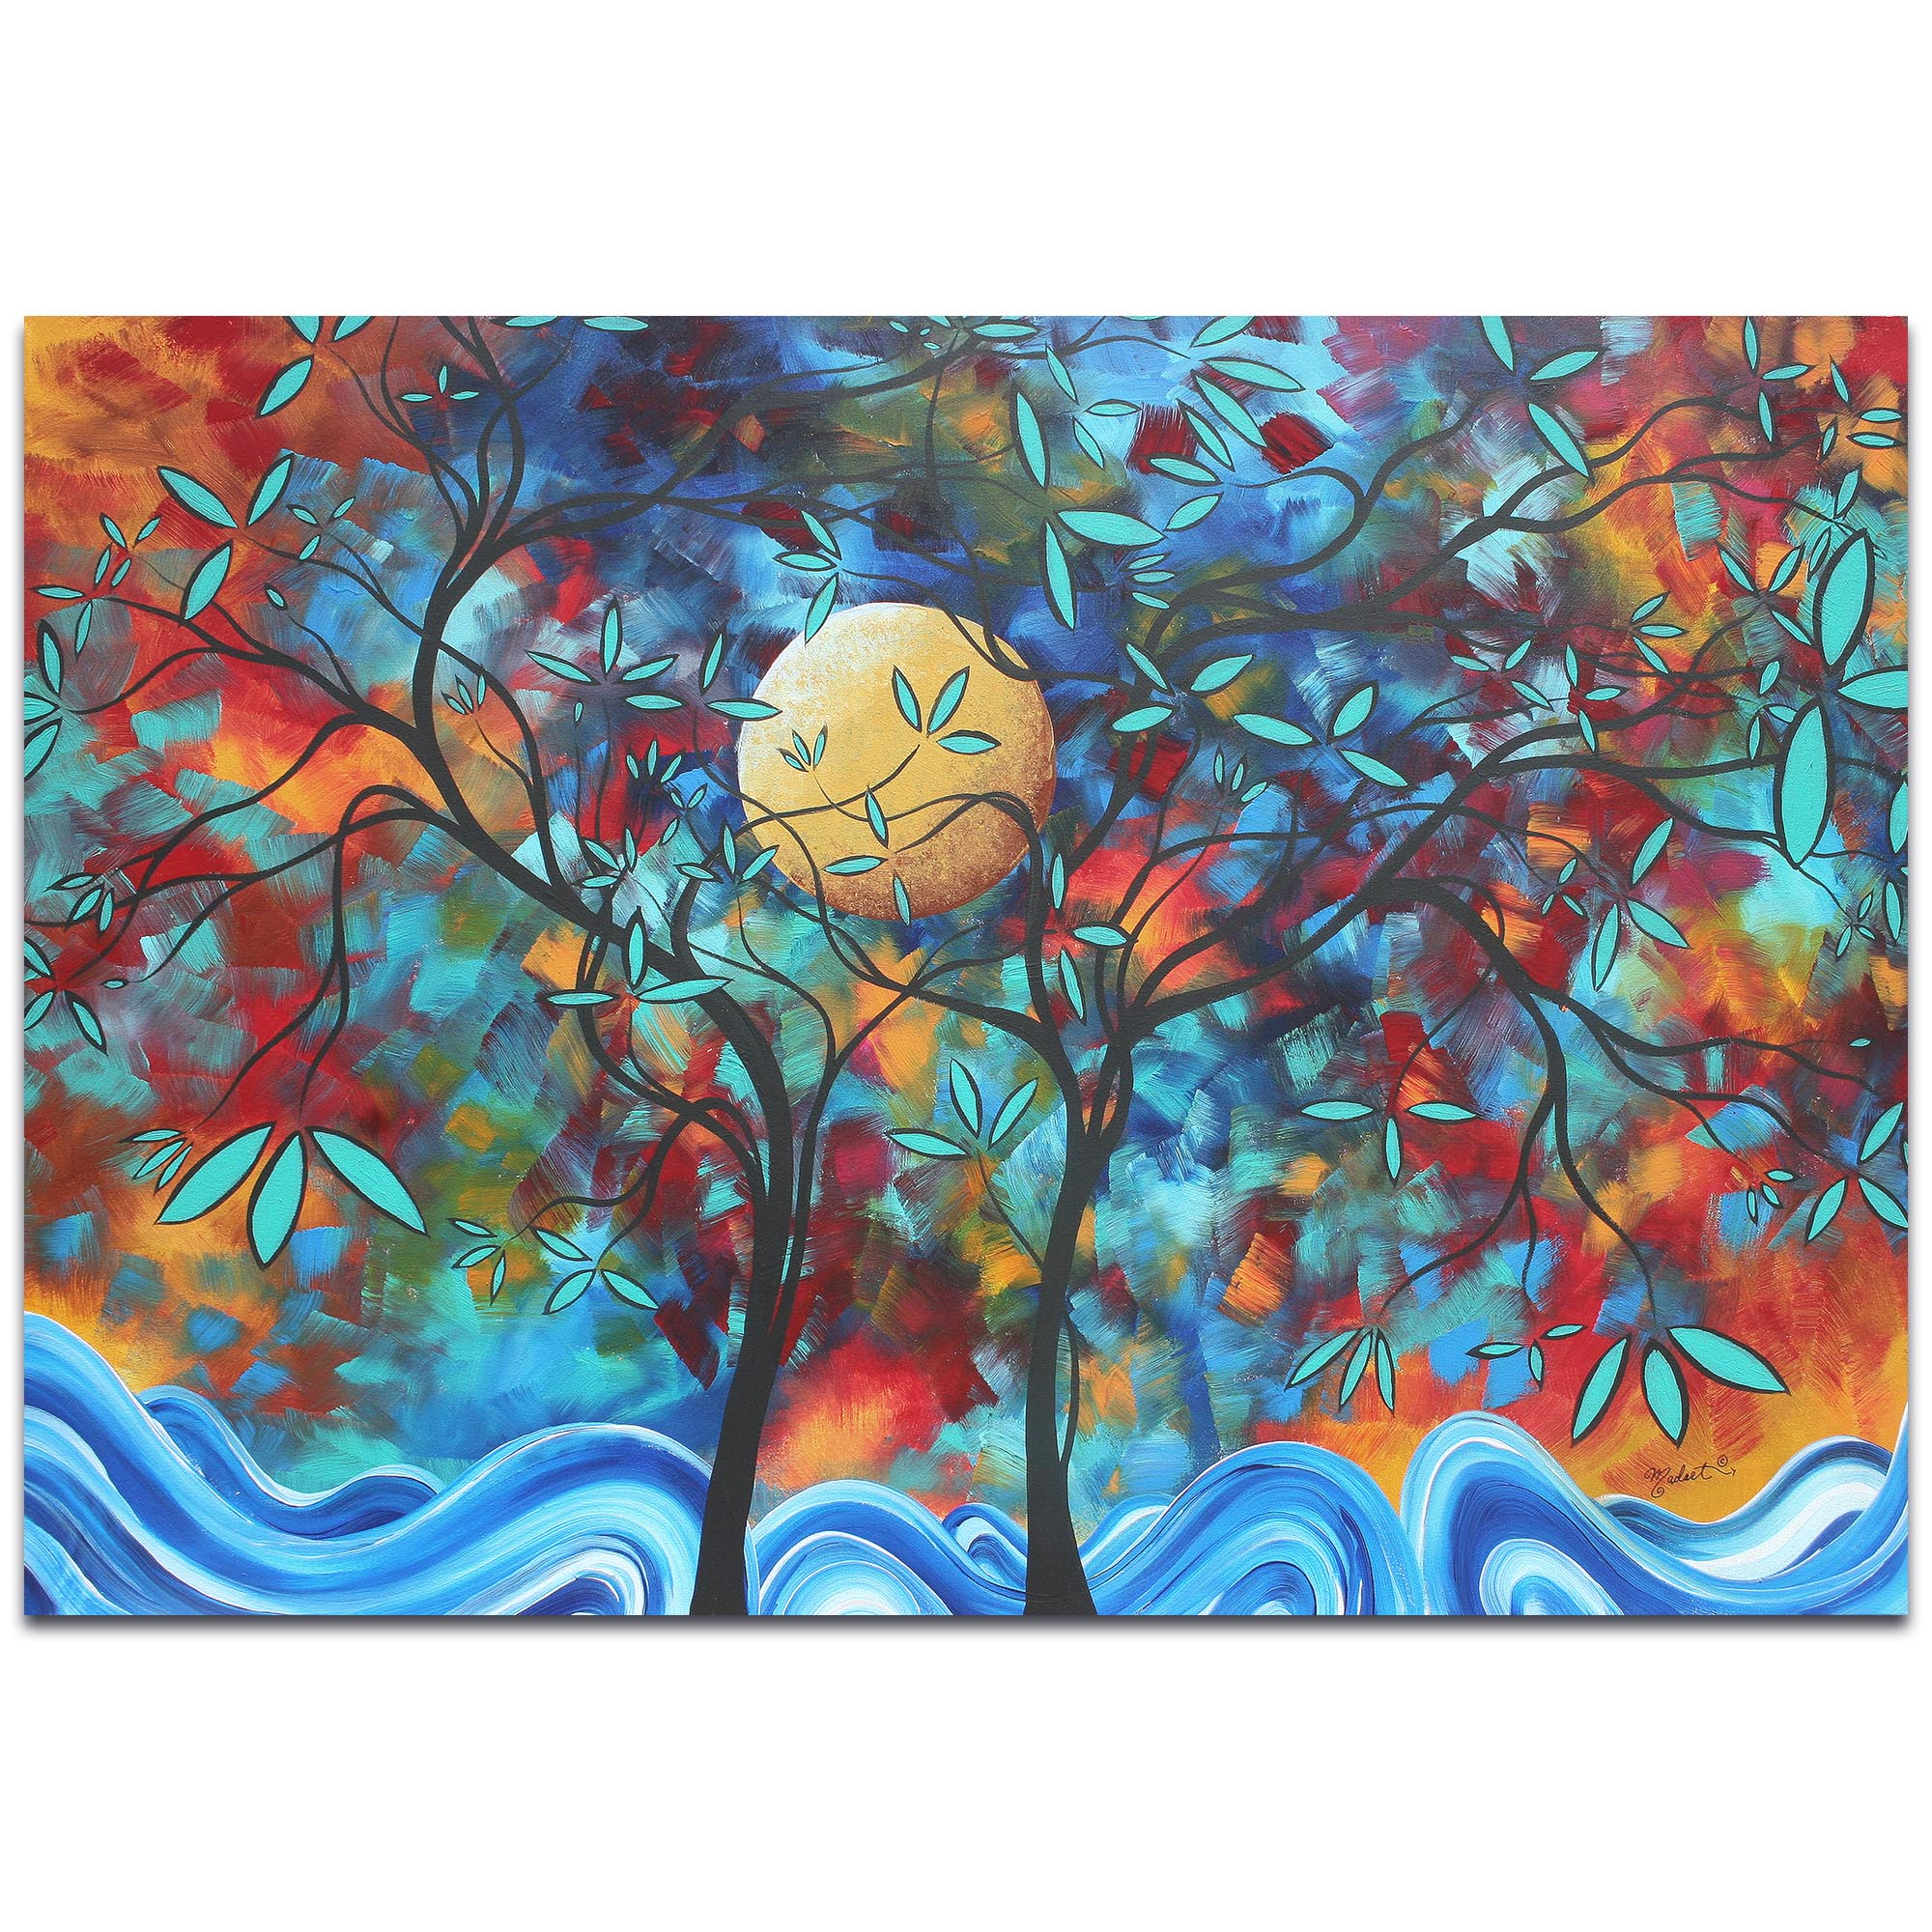 Landscape Painting 'Lovers Moon' - Abstract Tree Art on Metal or Acrylic